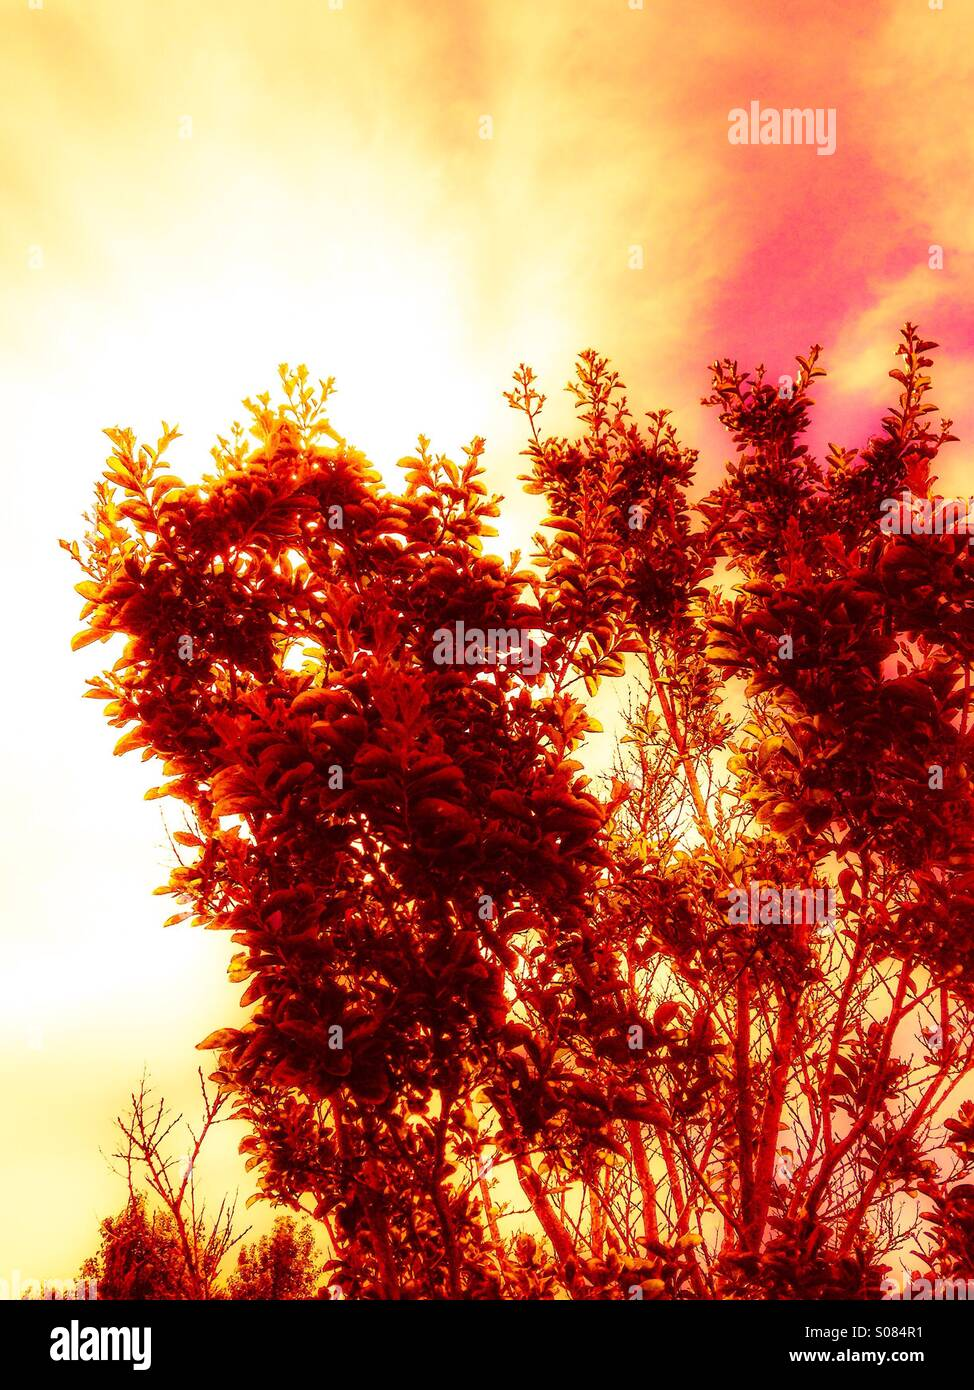 Tree branches with bright super saturation glow. Substantial digital processing. - Stock Image